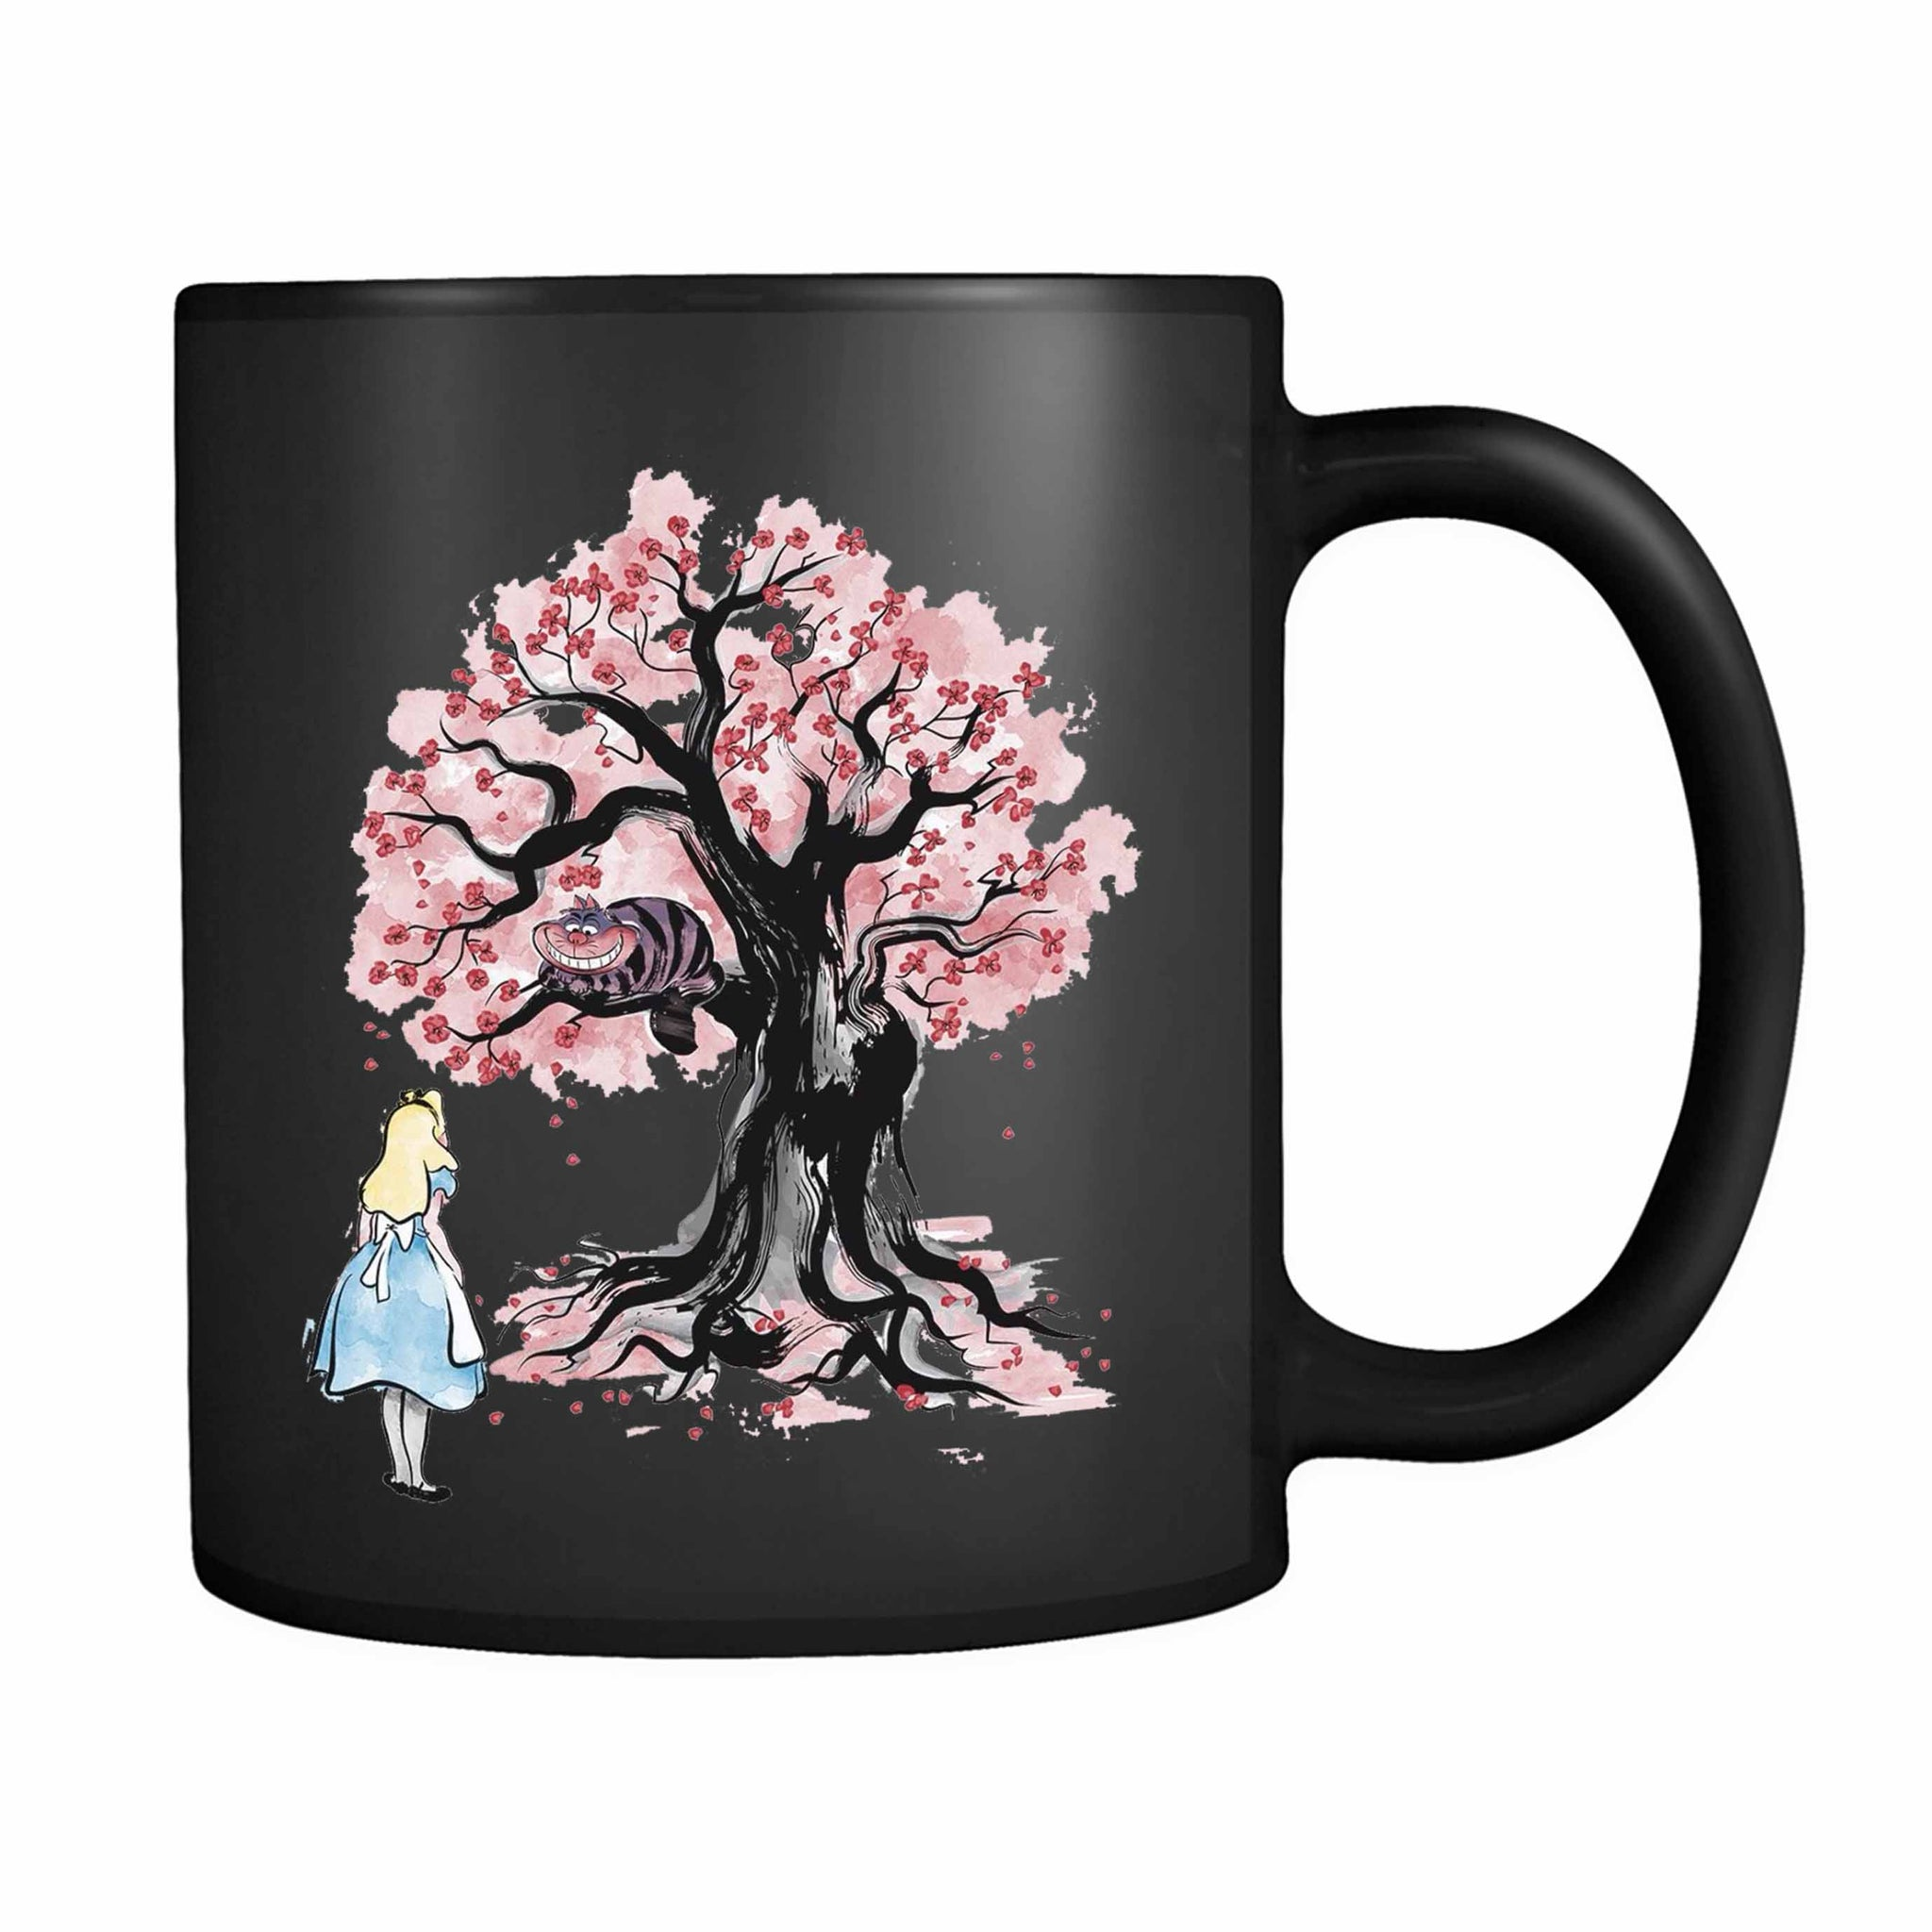 The Chesire's Tree 11oz Mug